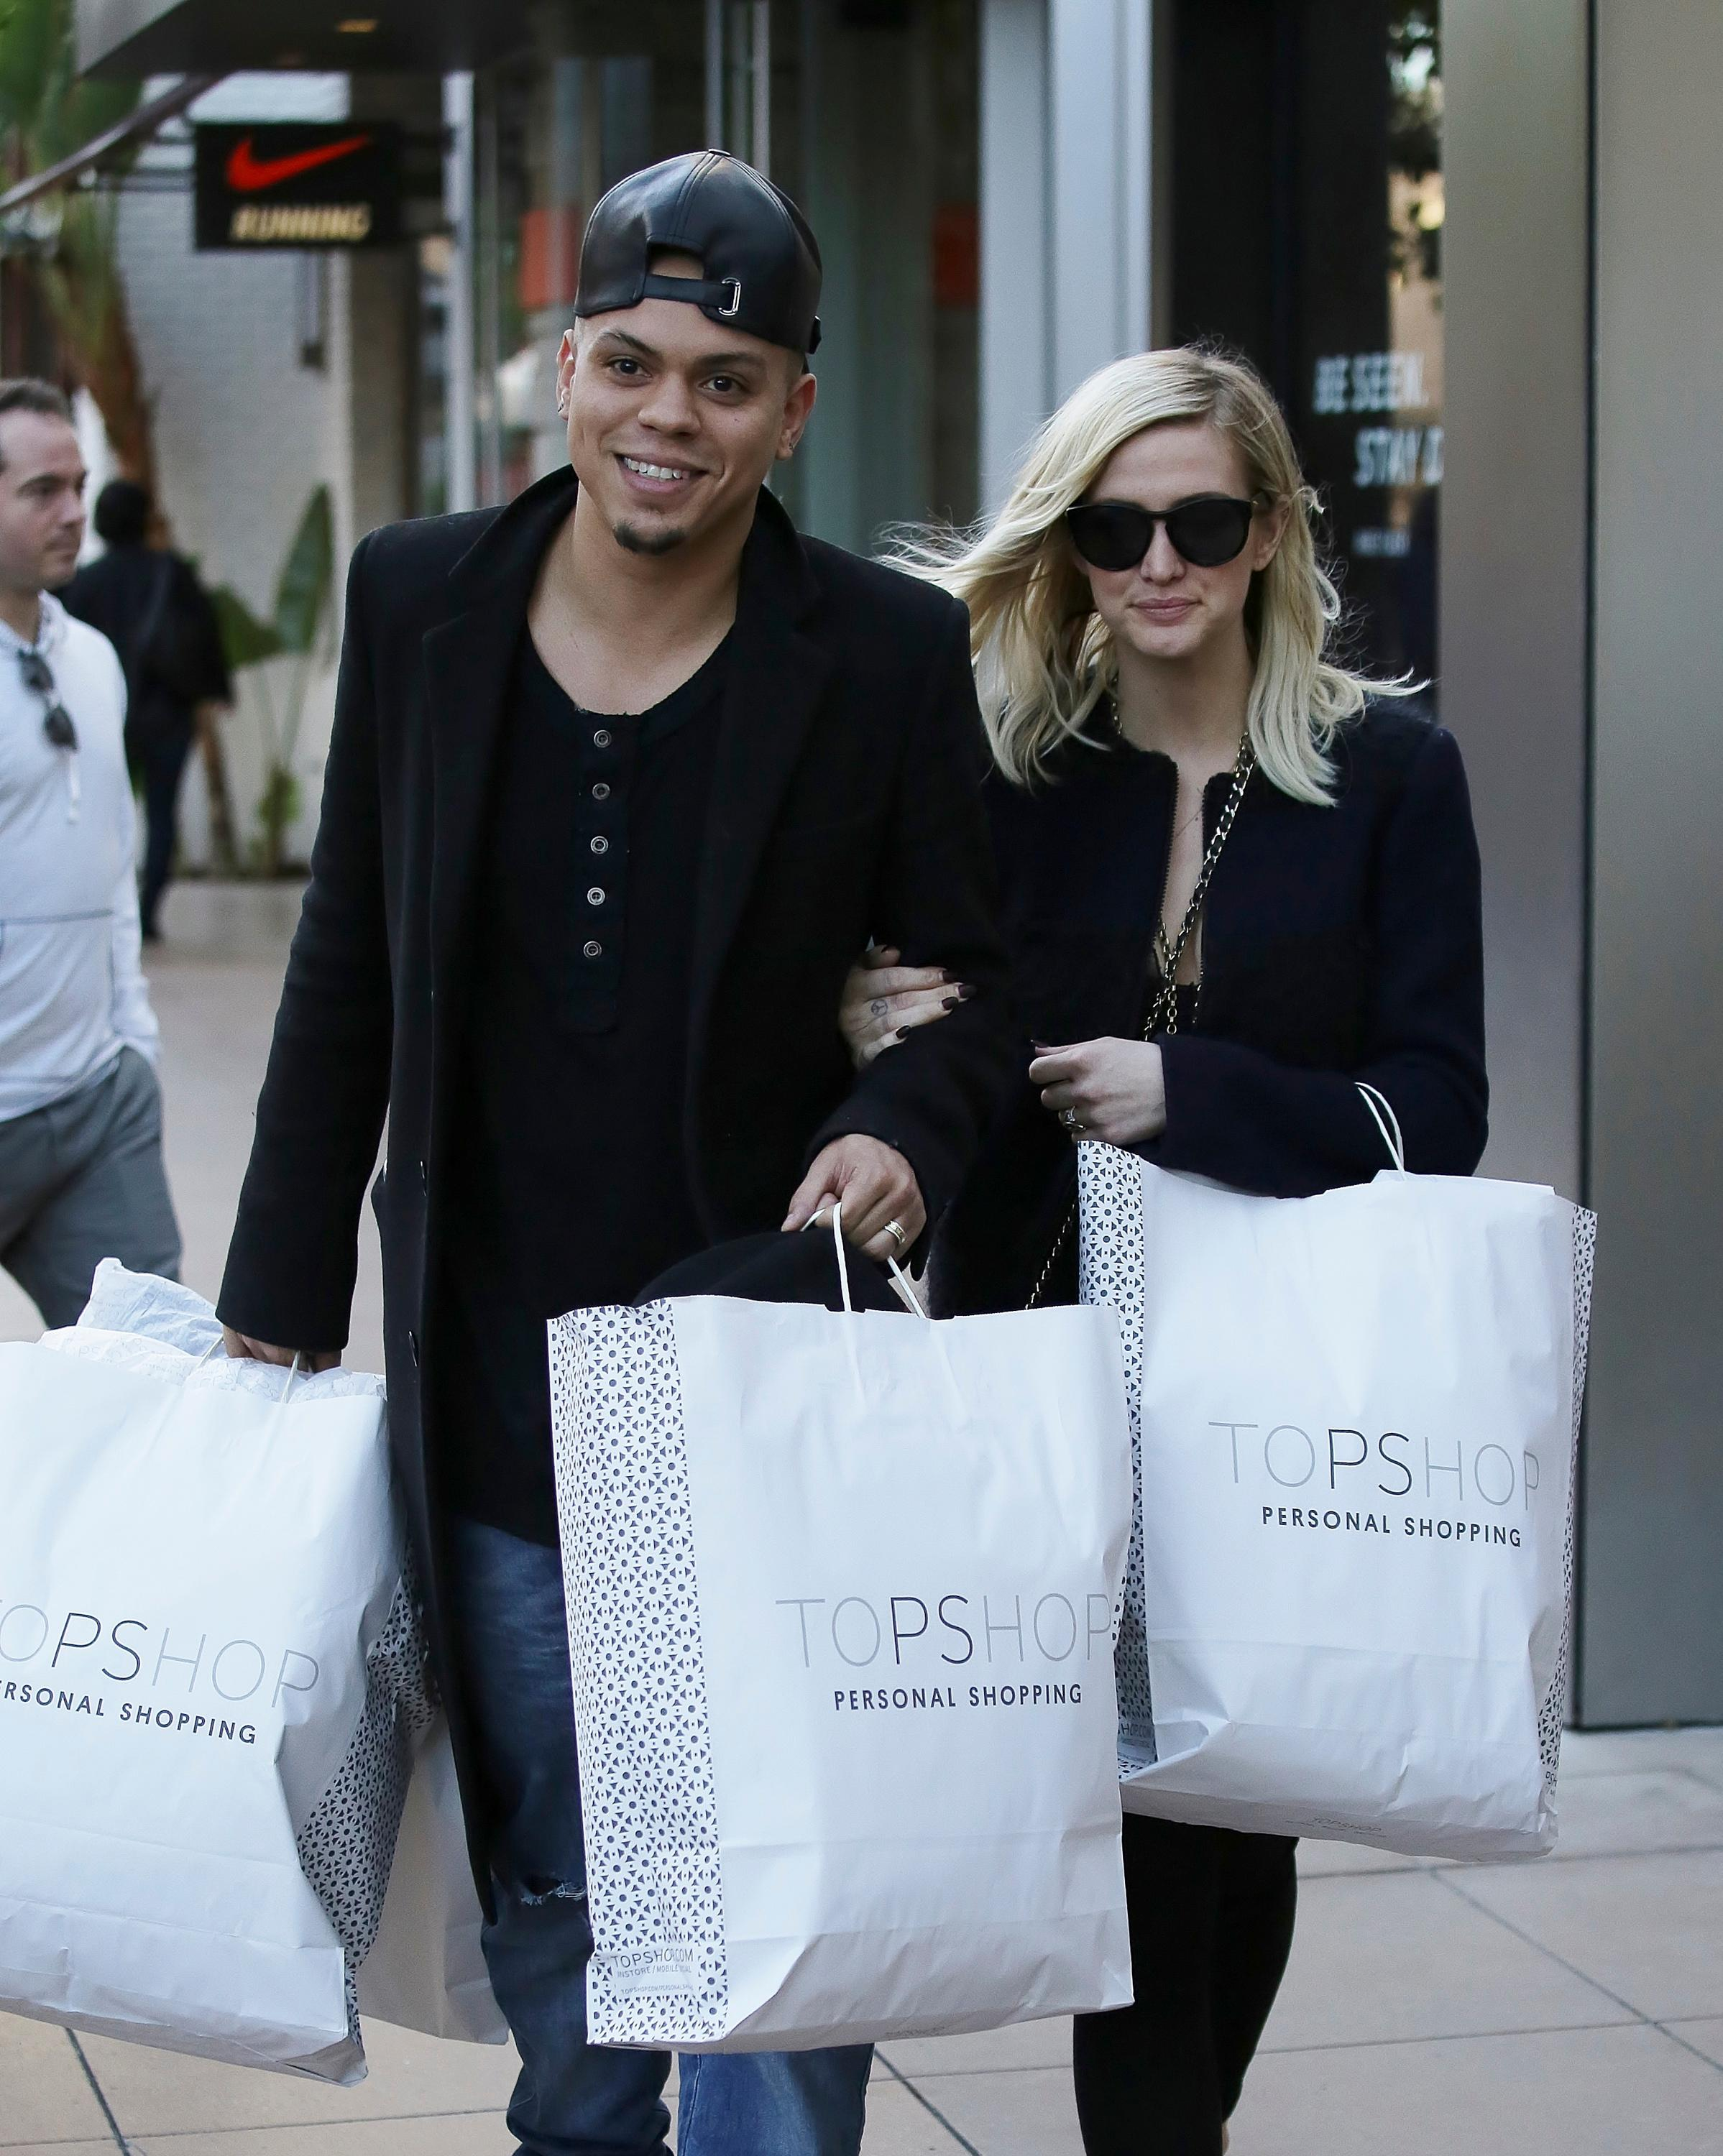 Ashlee Simpson and Evan Ross were seen shopping at Topshop Topman in West Hollywood, California